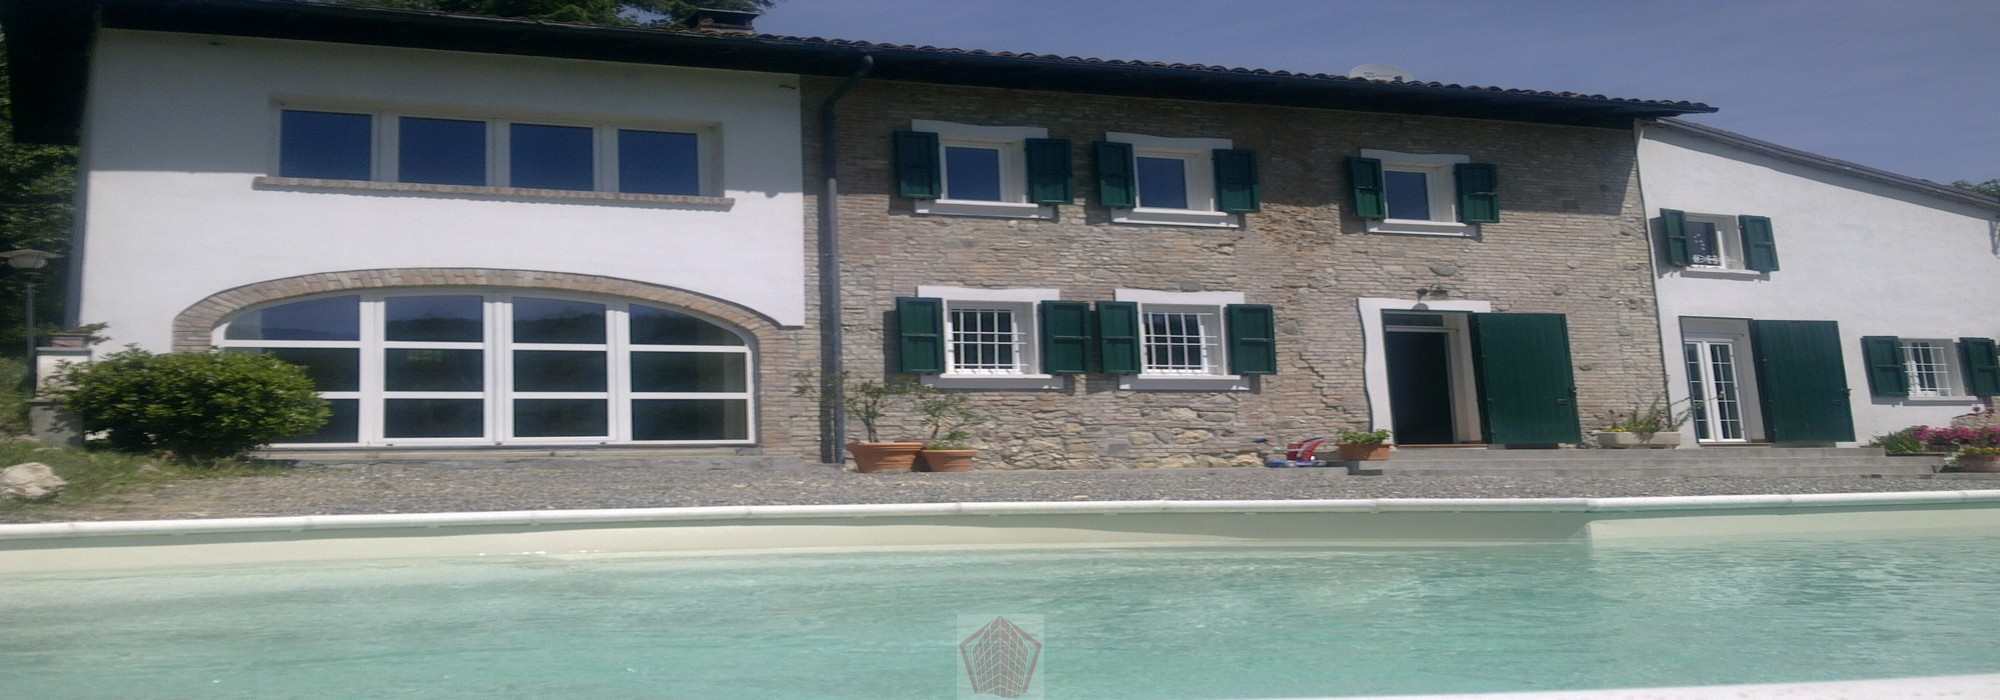 Canneto Pavese (PV) Casale con piscina in Oltrepo Pavese Rif. 221